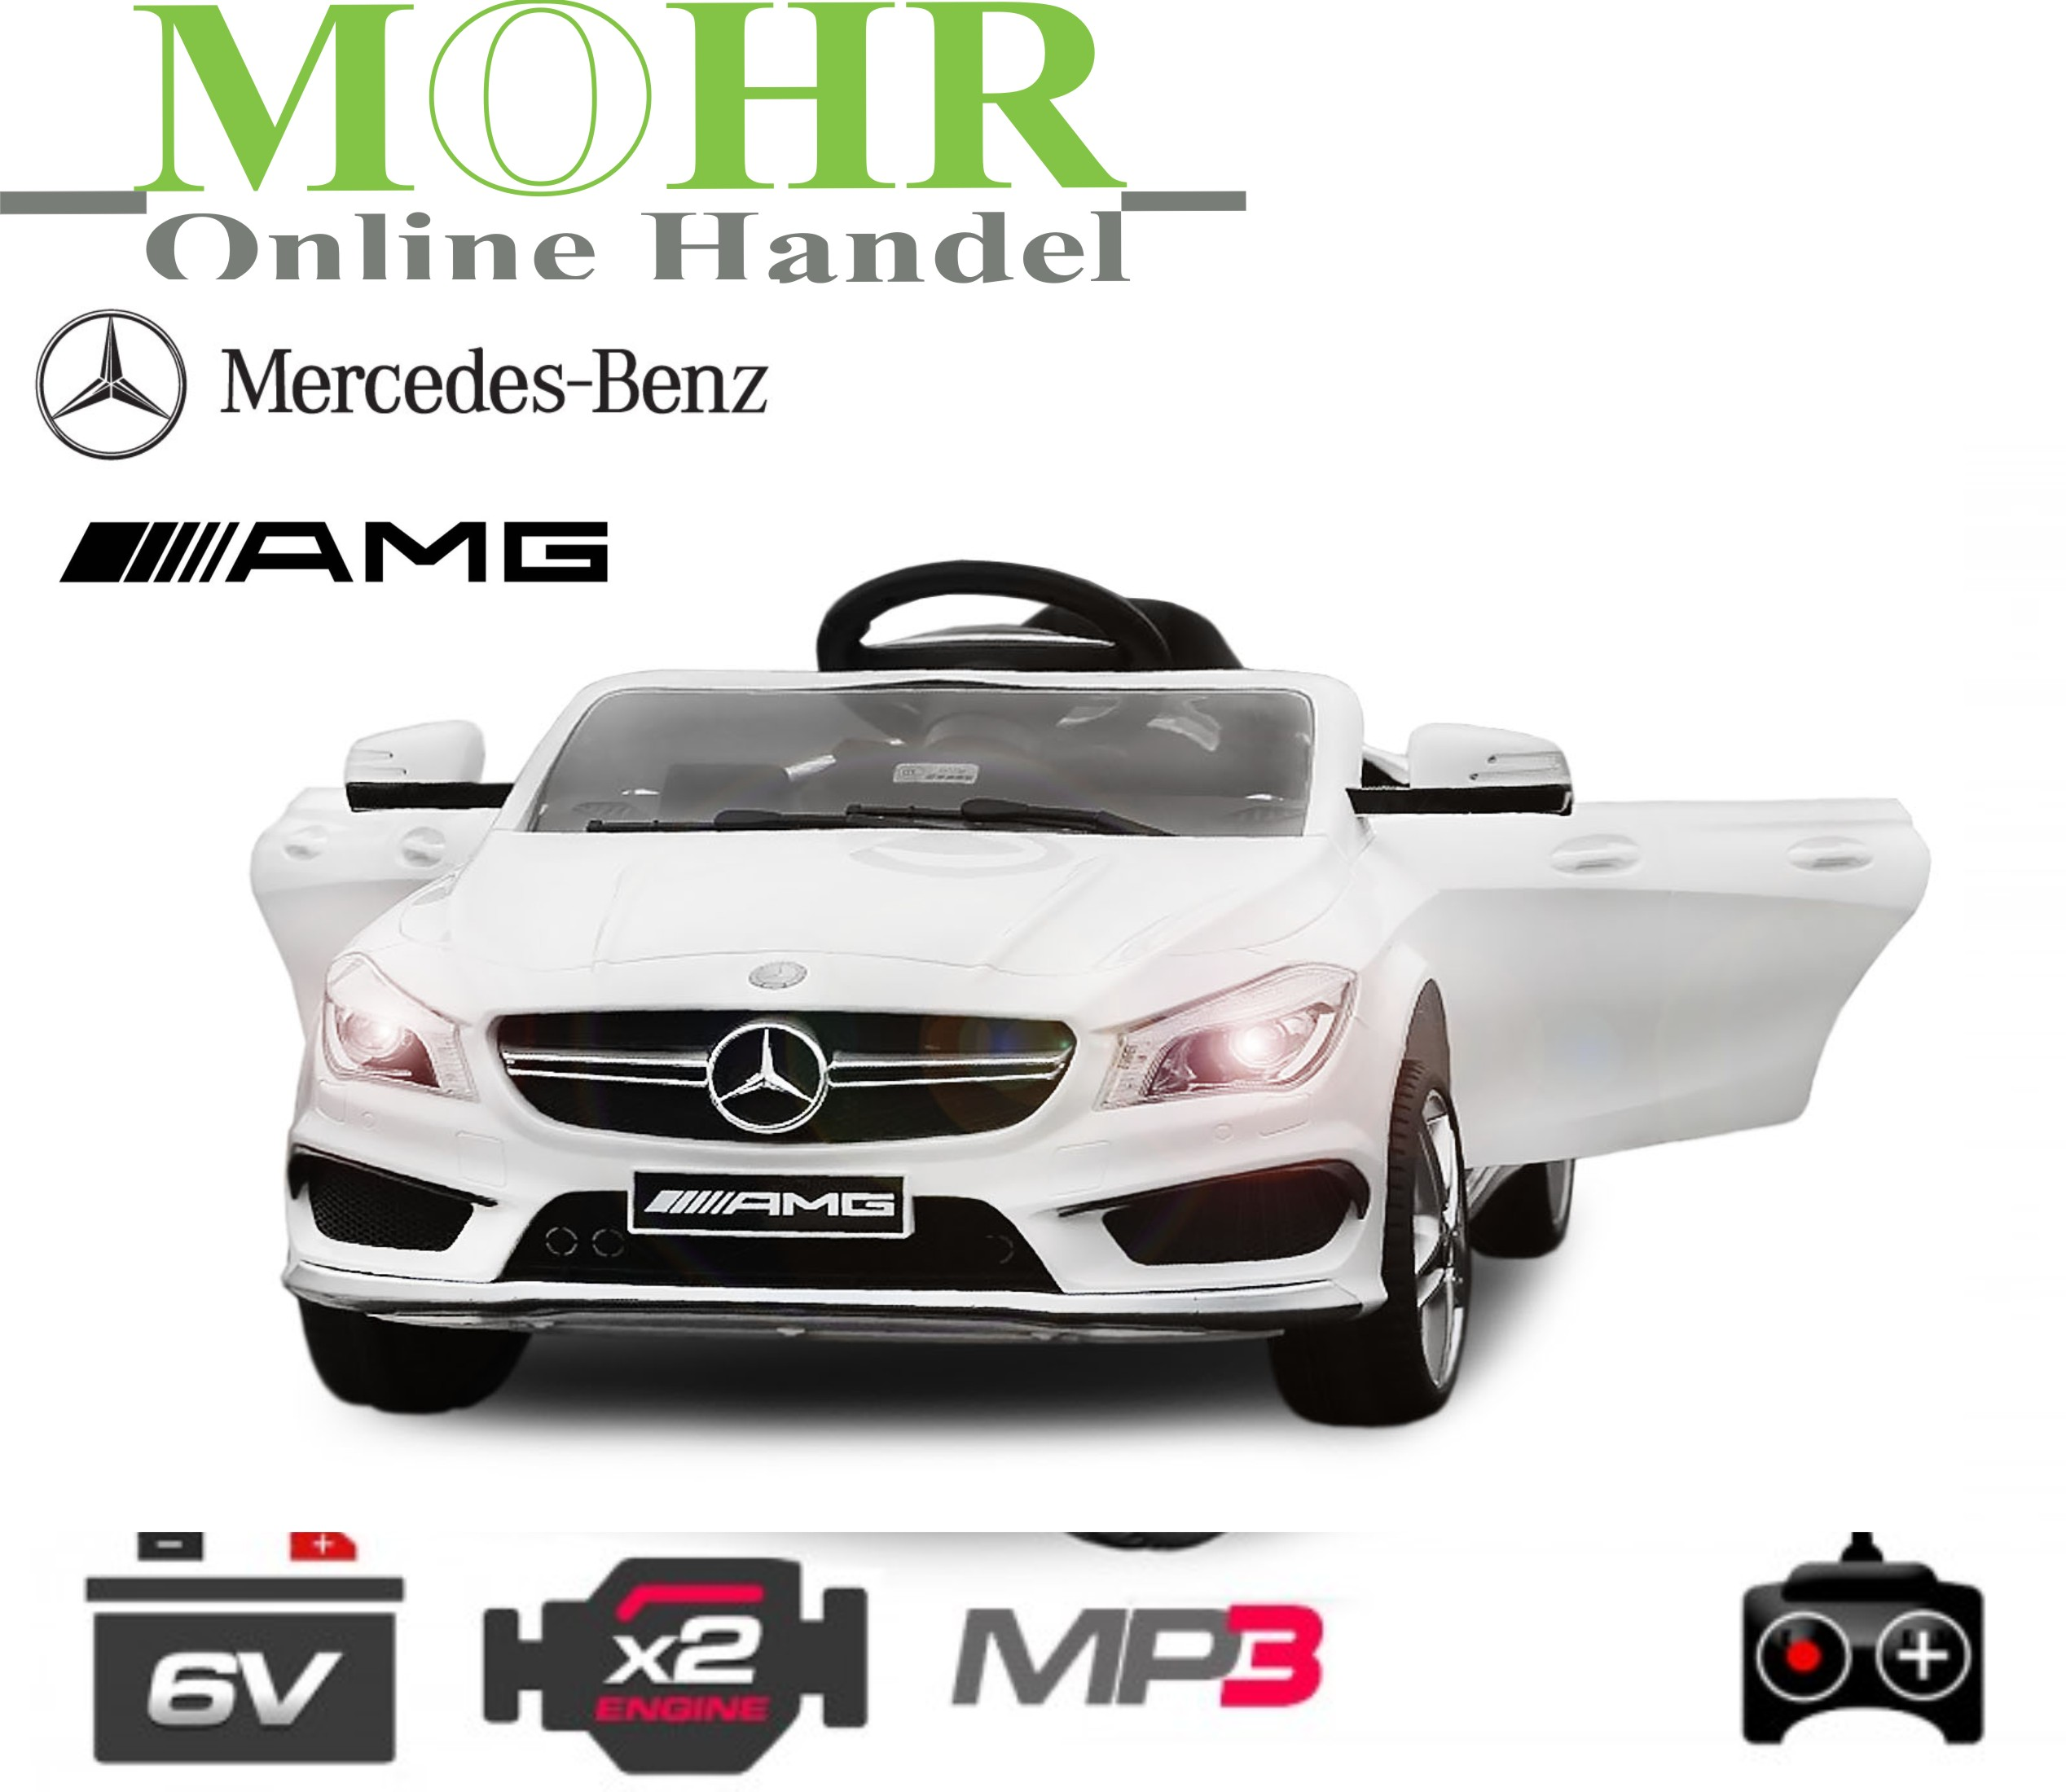 mohr onlinehandel mercedes benz cla45 kinder elektroauto. Black Bedroom Furniture Sets. Home Design Ideas